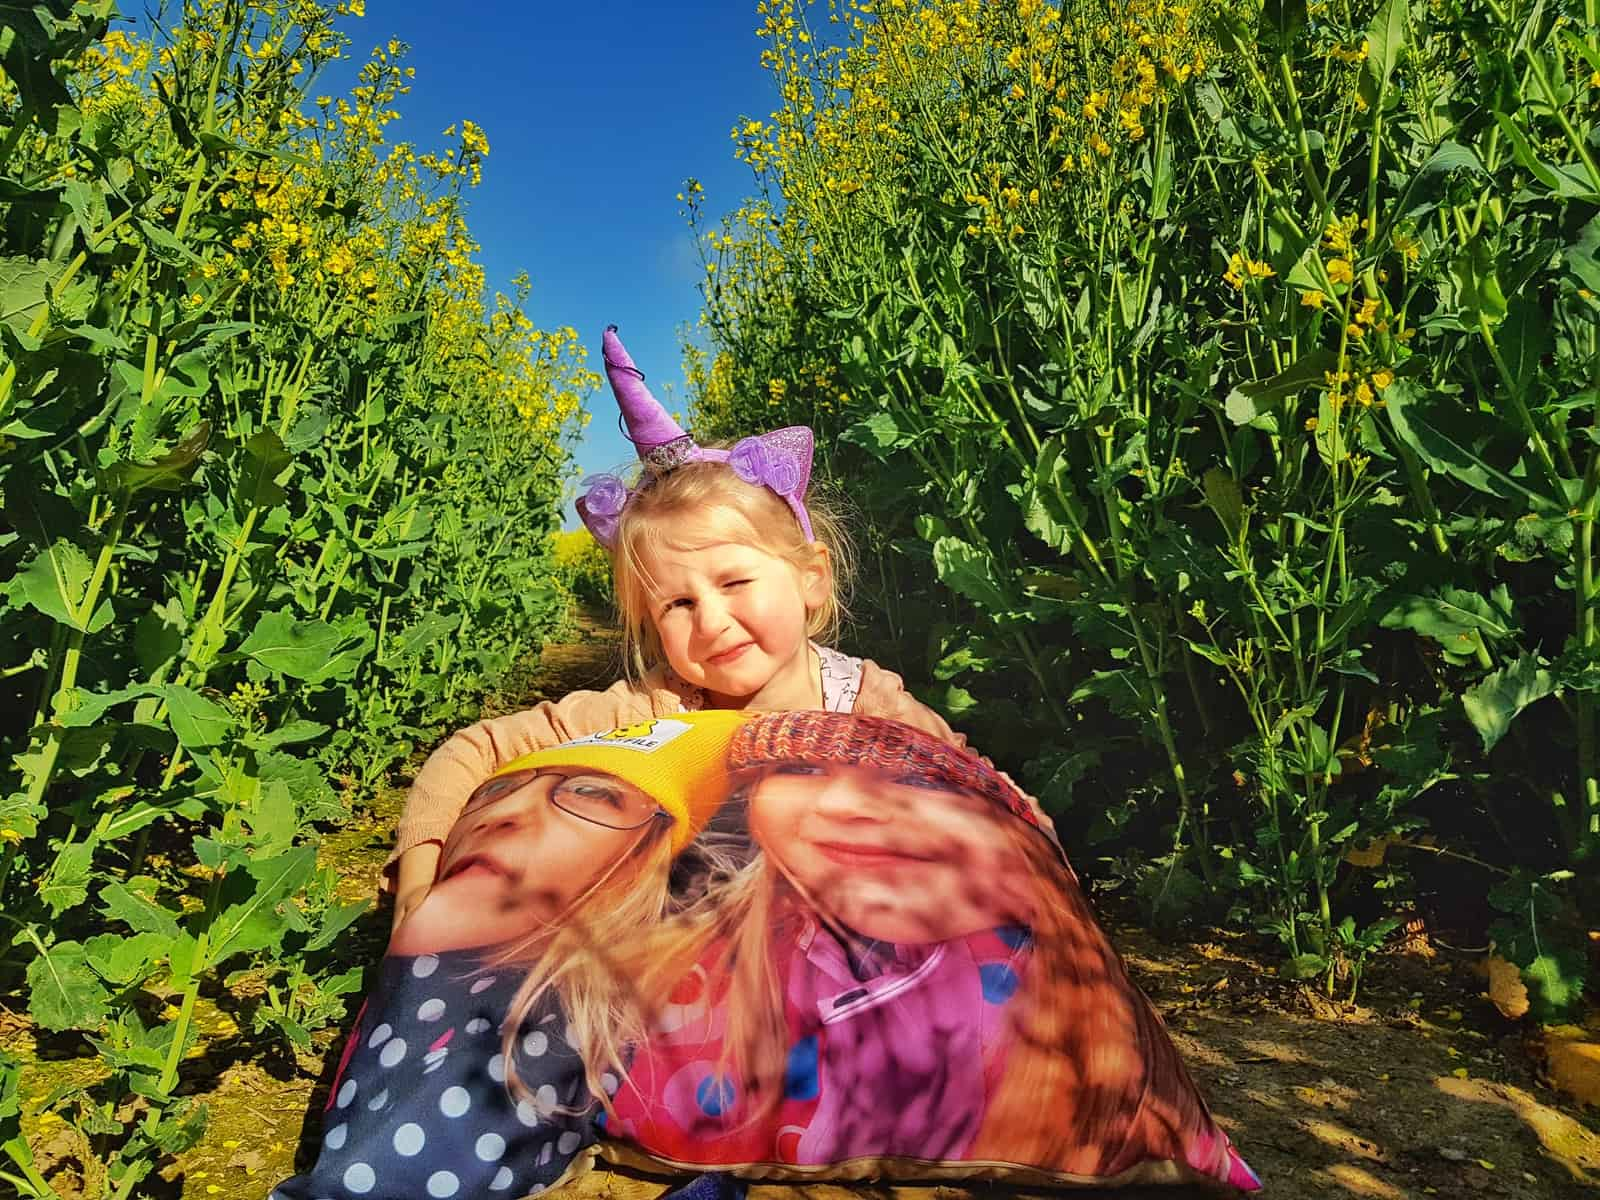 little girl sat in field of oilseed rape holding cushion with a photo of two little girls on it